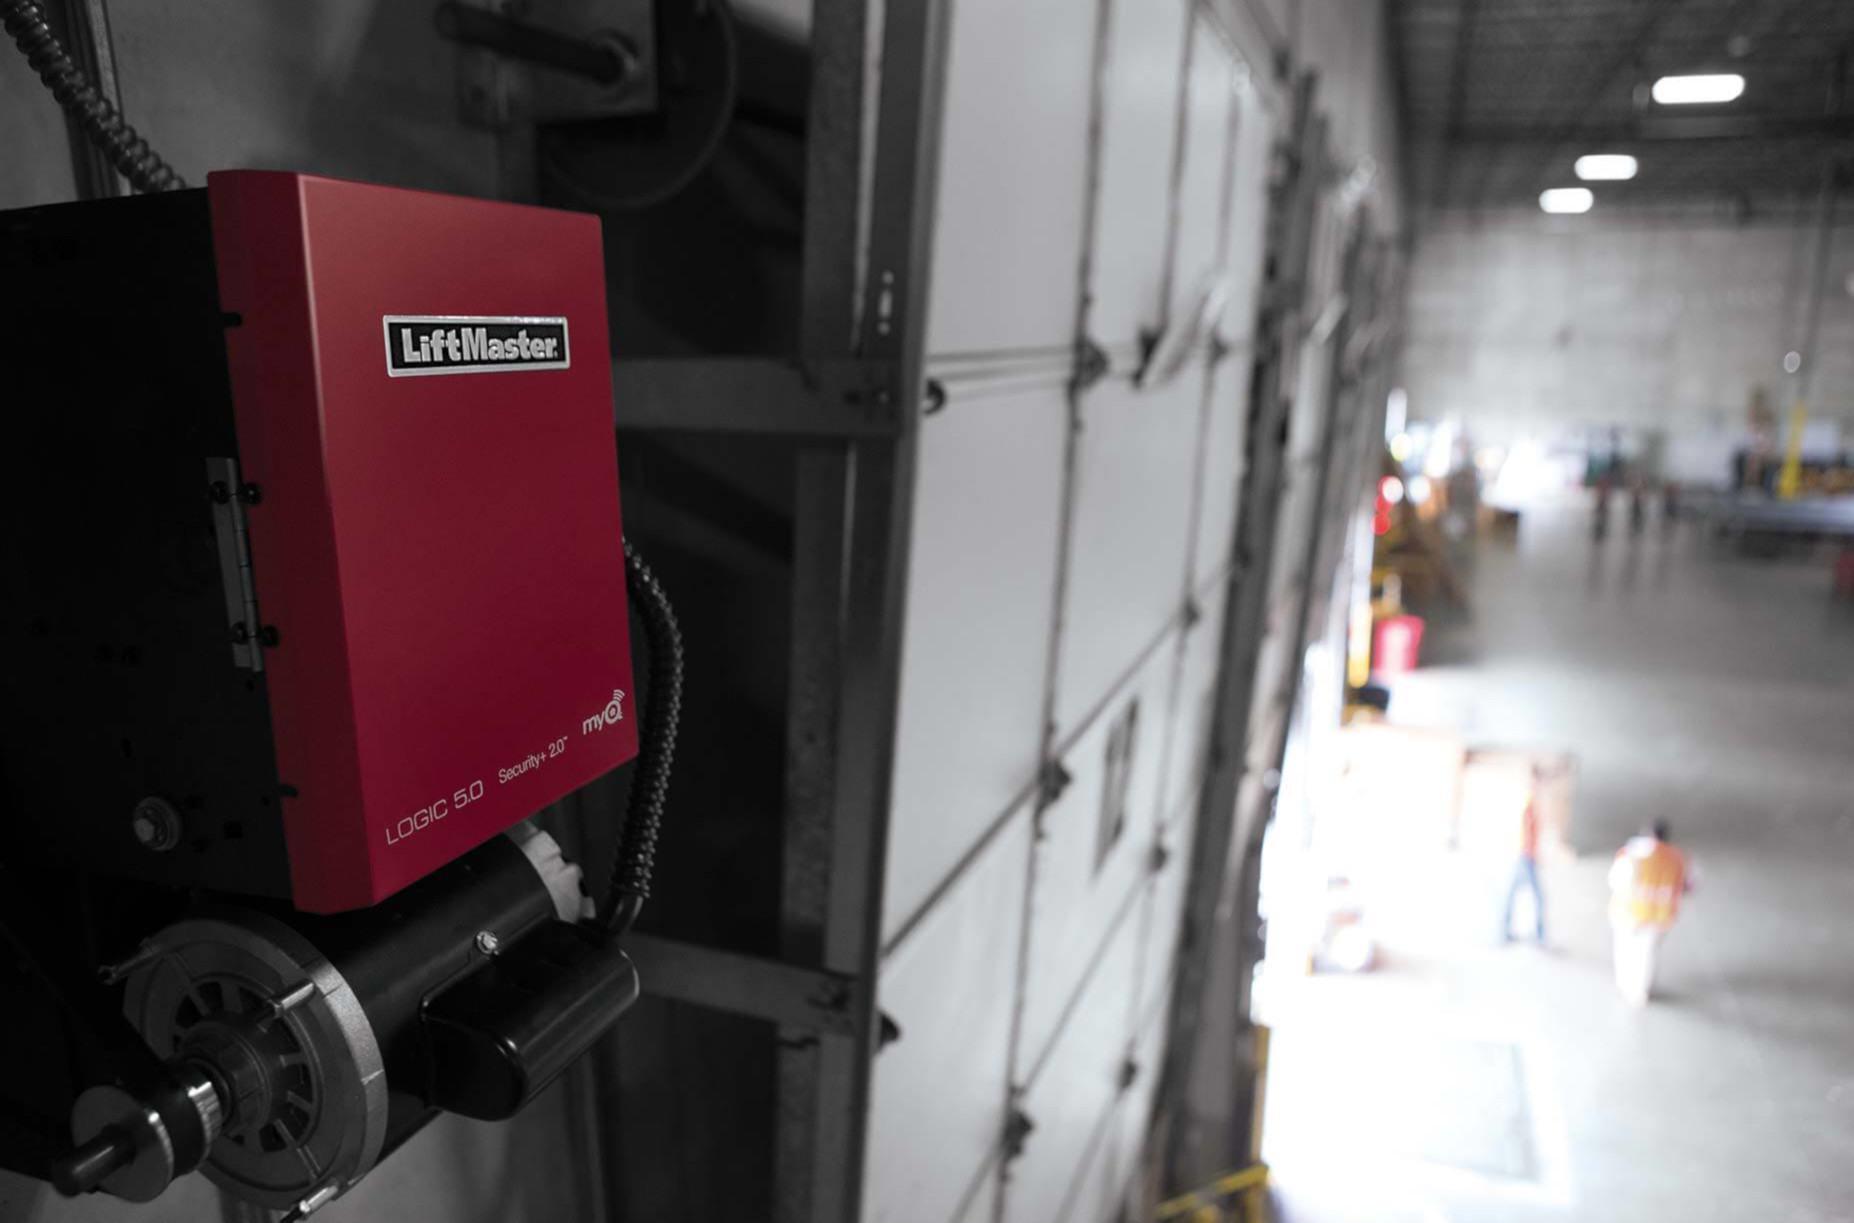 WAREHOUSE  LiftMaster understands your primary concerns center around safety, security, convenience and energy savings in your warehouse